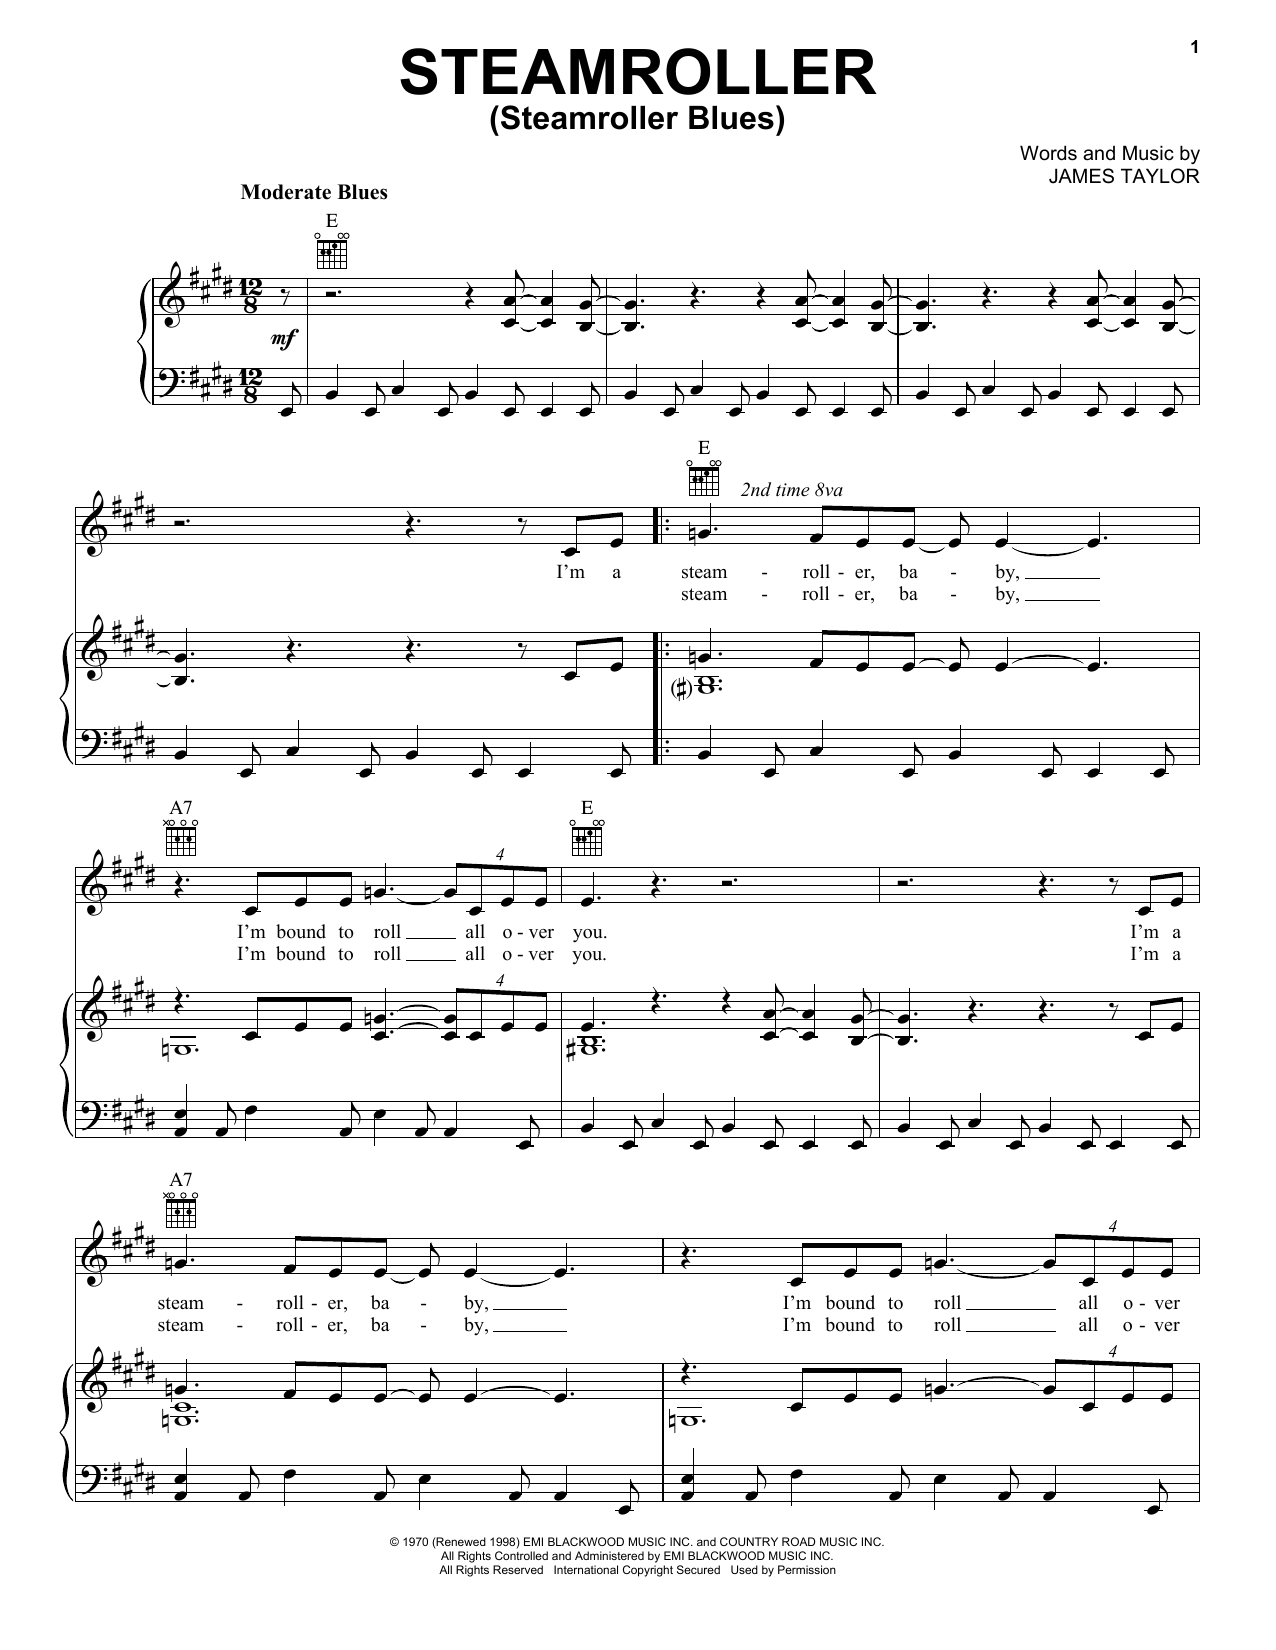 Steamroller (Steamroller Blues) Sheet Music